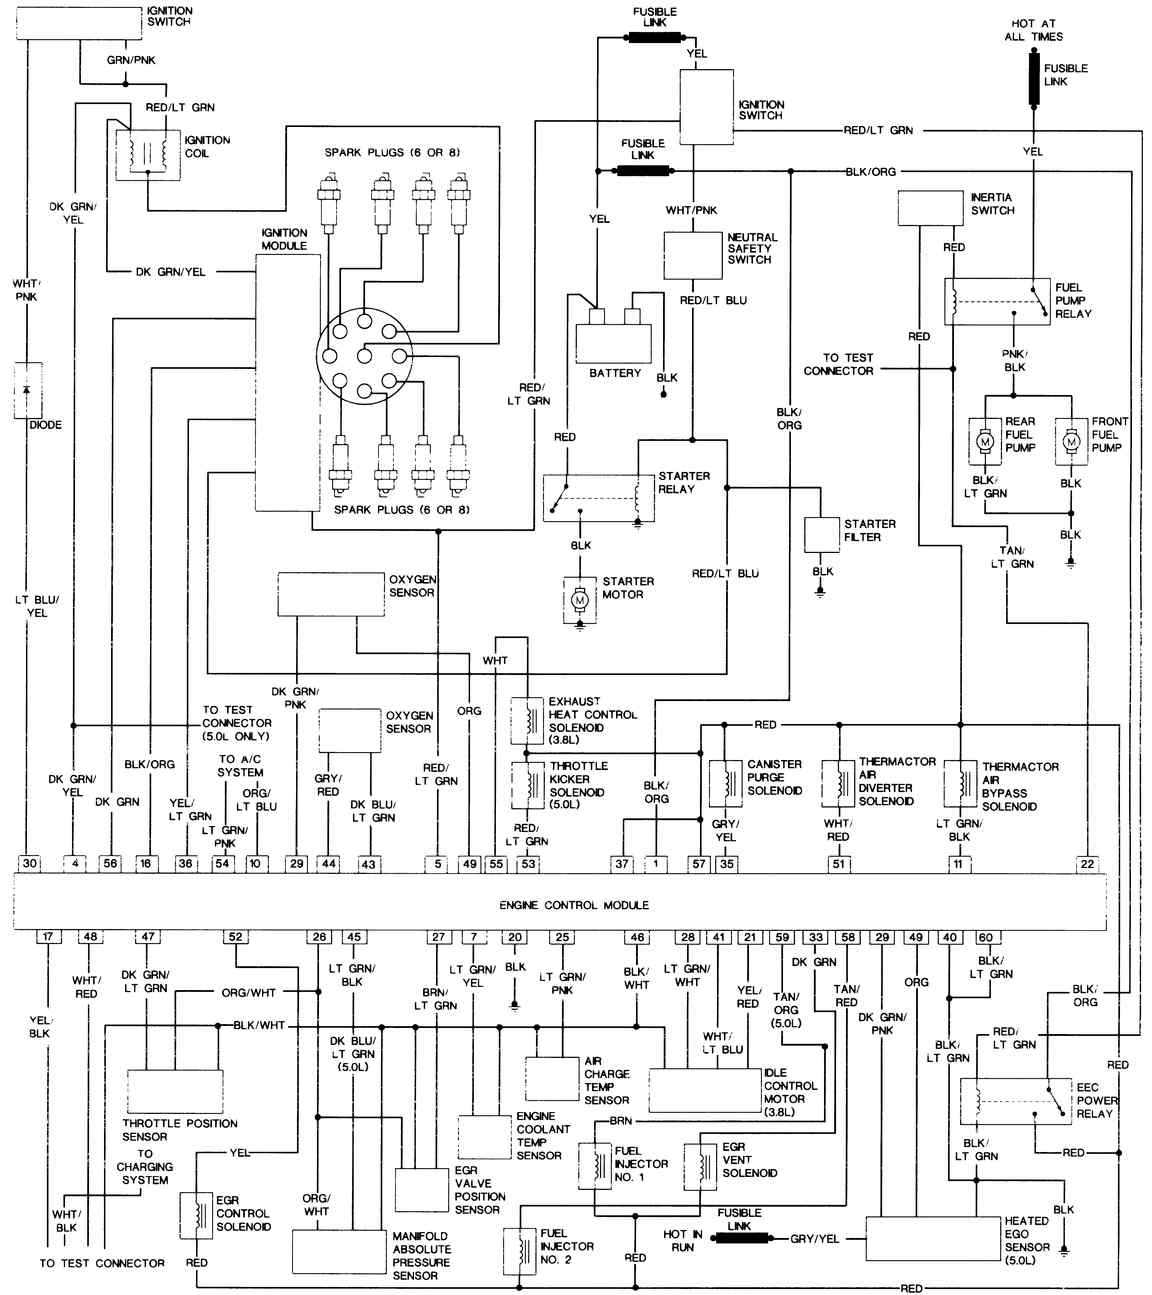 Ford F 250 Steering Column Wiring Diagram besides 12671 2 furthermore 7evgv 89 Ford Bronco Yhat Fuel Pump Will Not Run as well FD9W2 likewise 345088390176179432. on 1984 ford f 250 wiring diagram